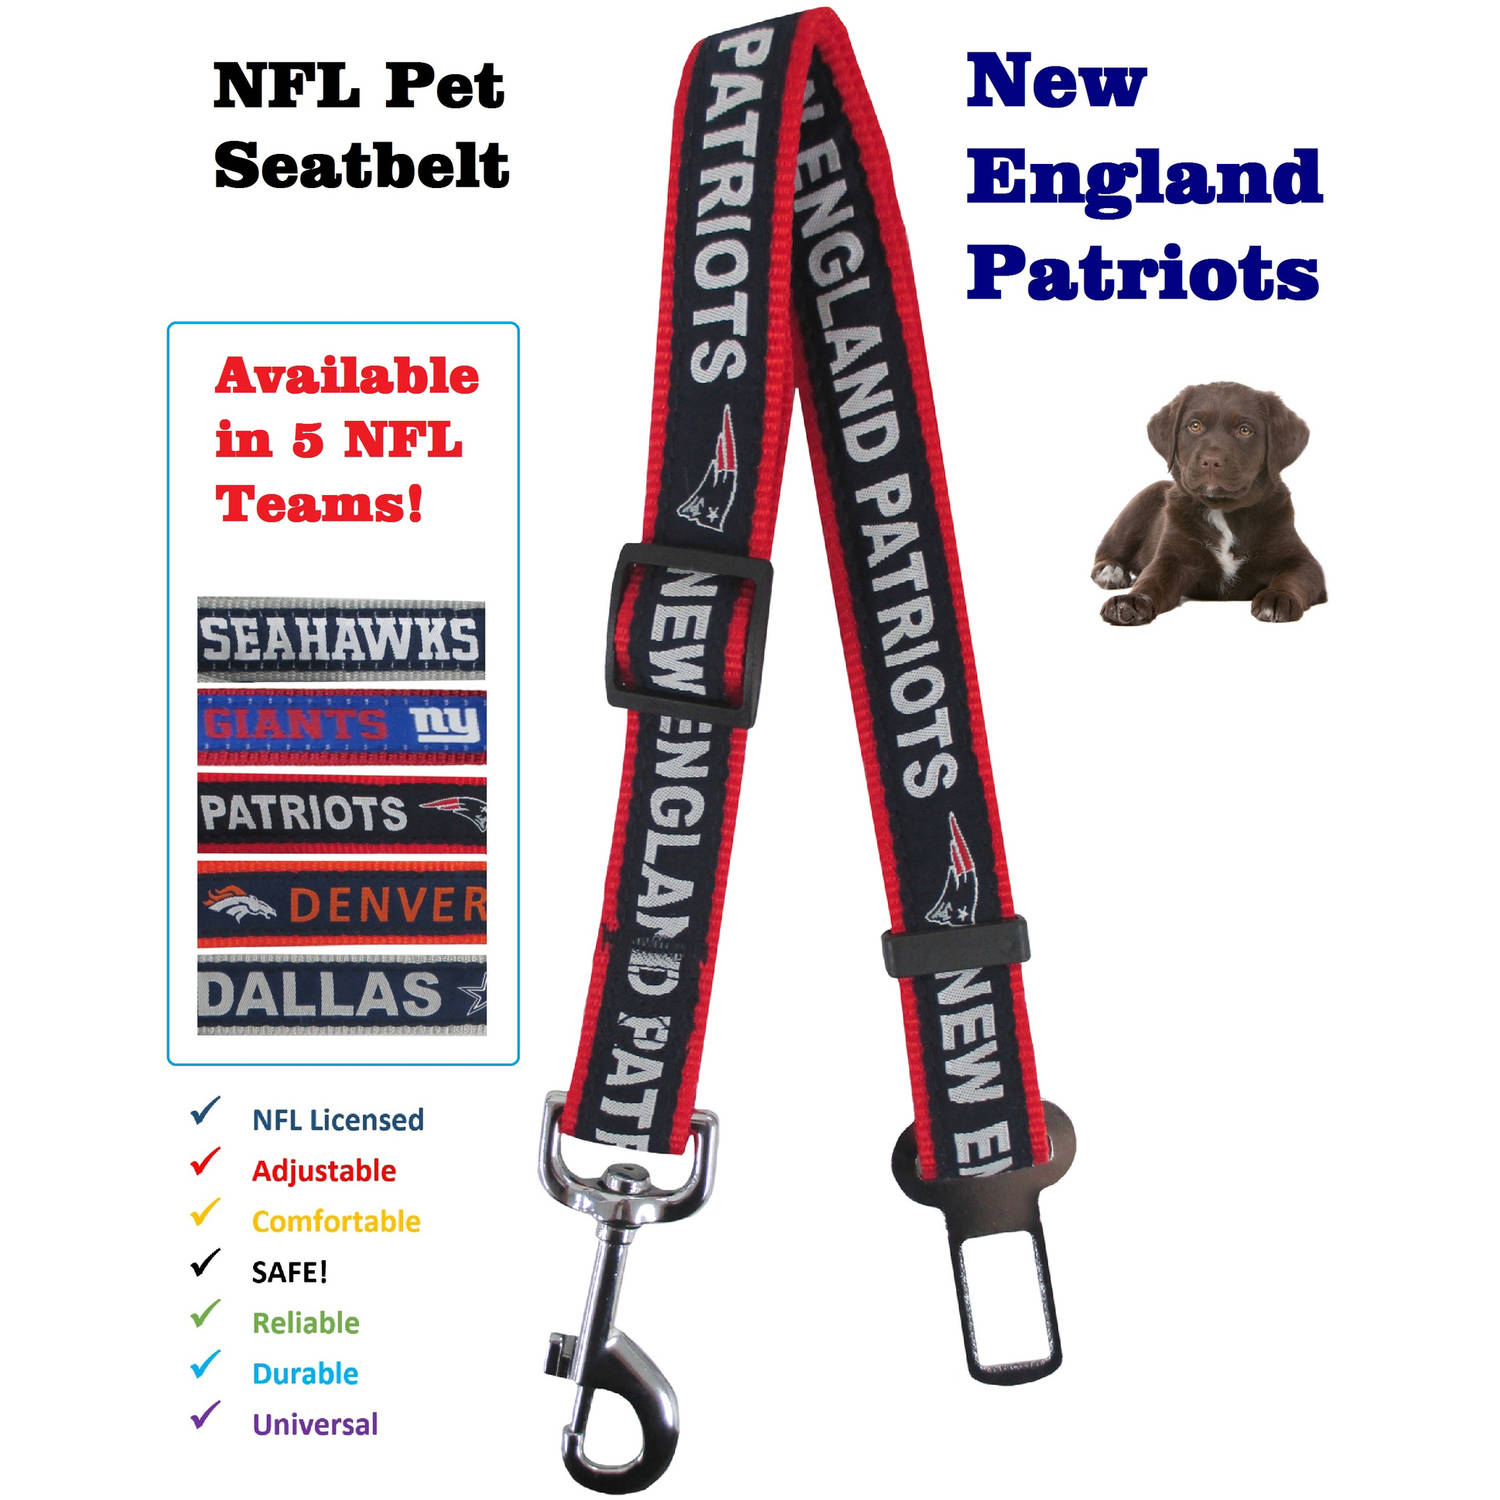 Pets First NFL New England Patriots Pet Seat Belt Restraint